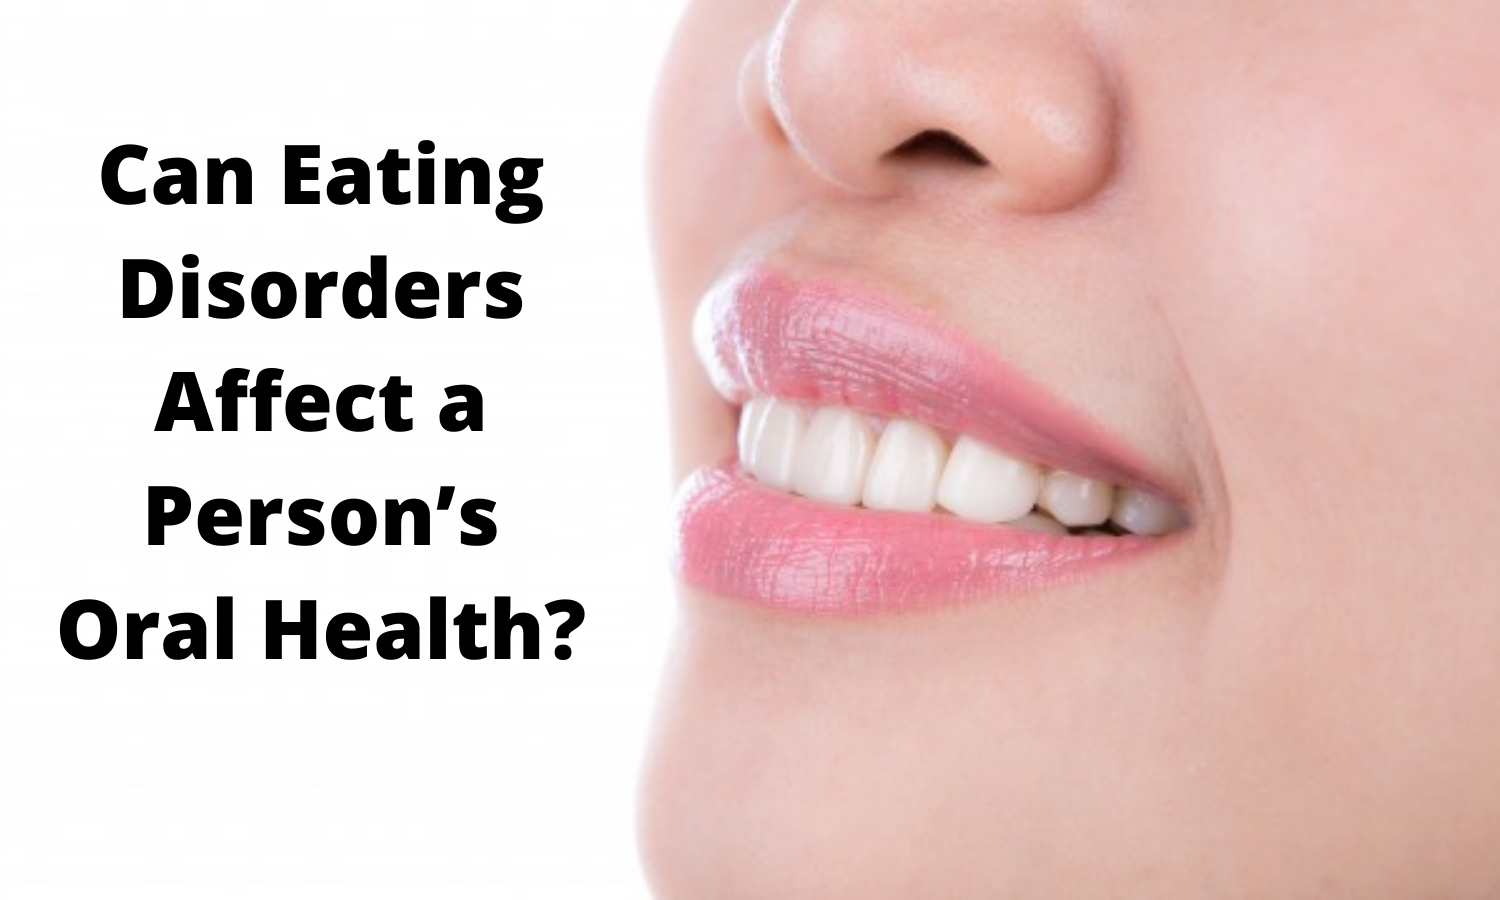 Can Eating Disorders Affect a Person's Oral Health?